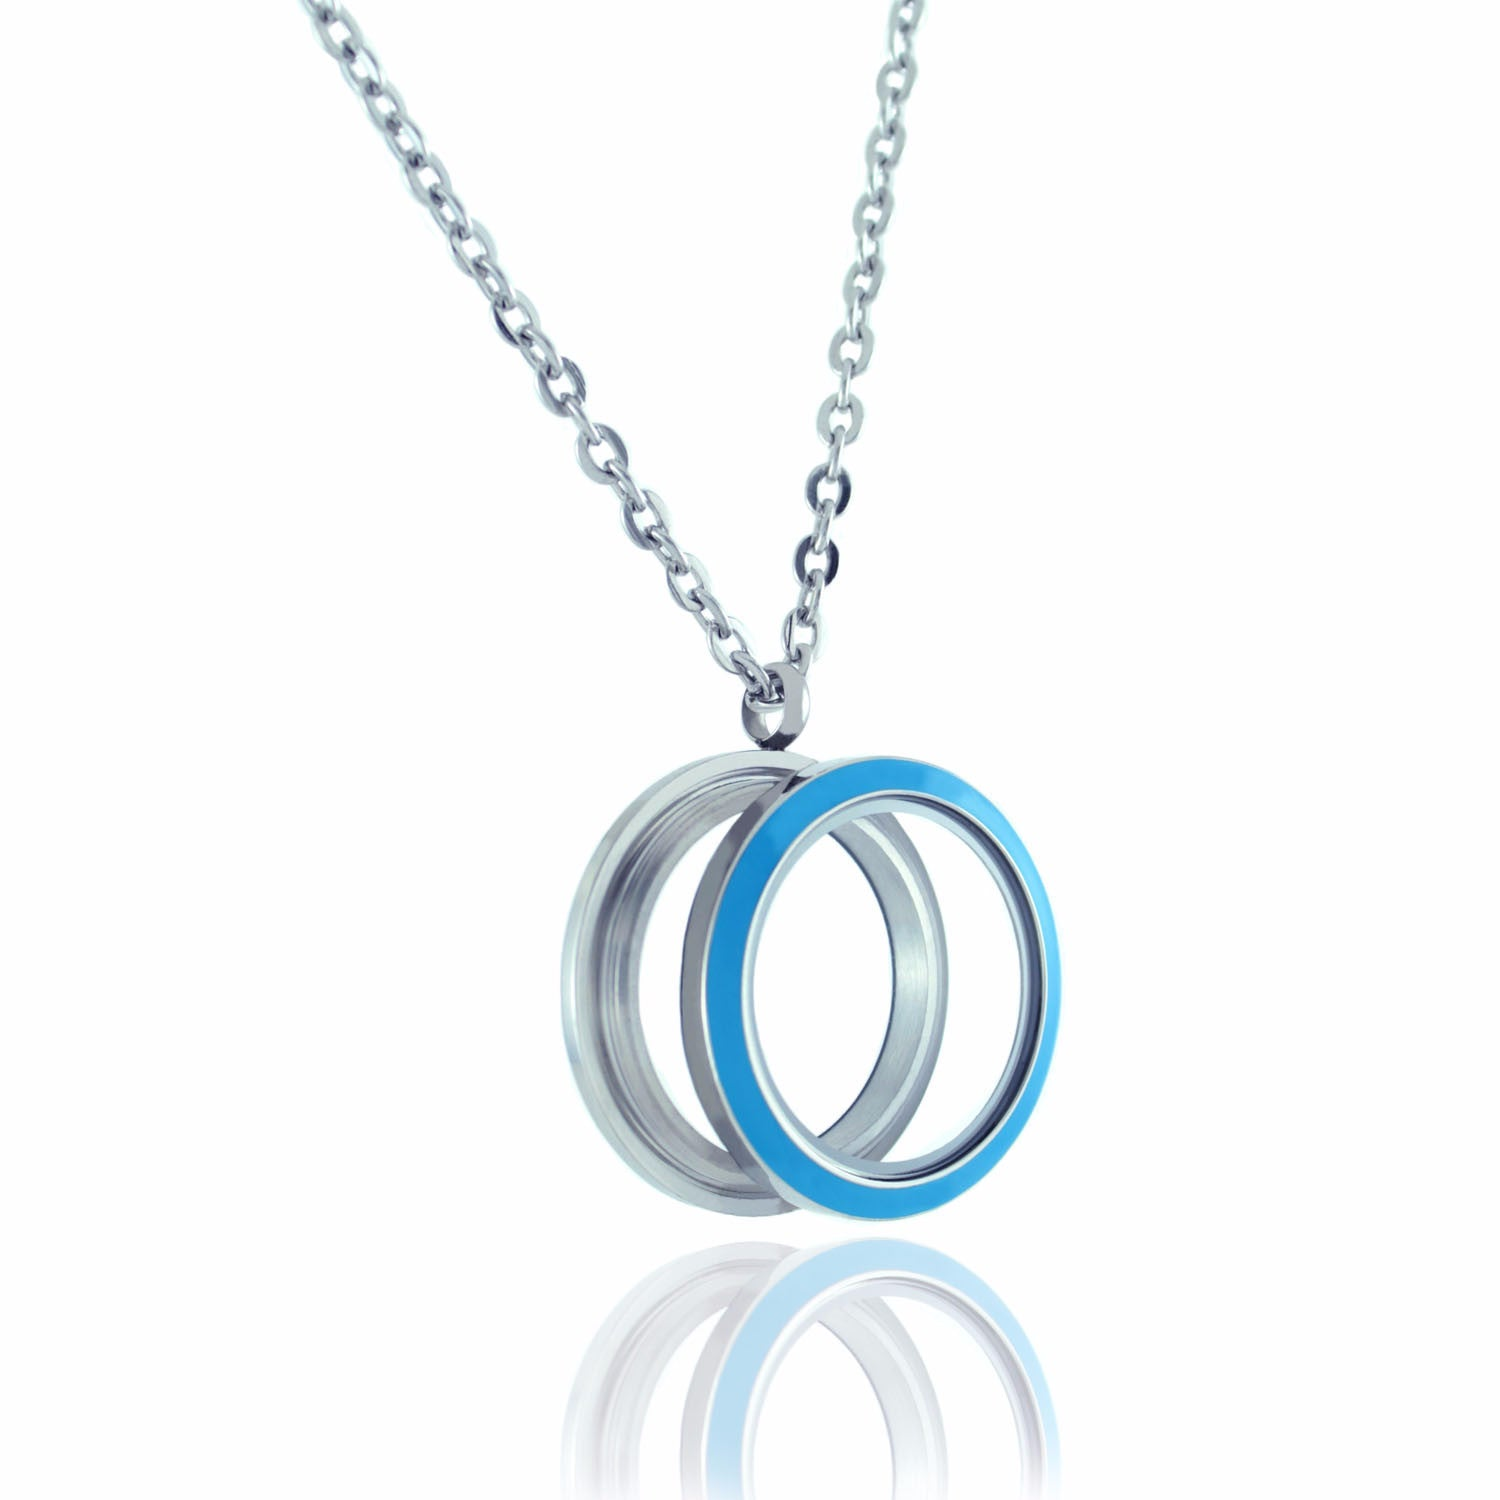 Floating Locket Necklace with Matching Chain and Choice of 6 Charms (Twist Blue Circle)